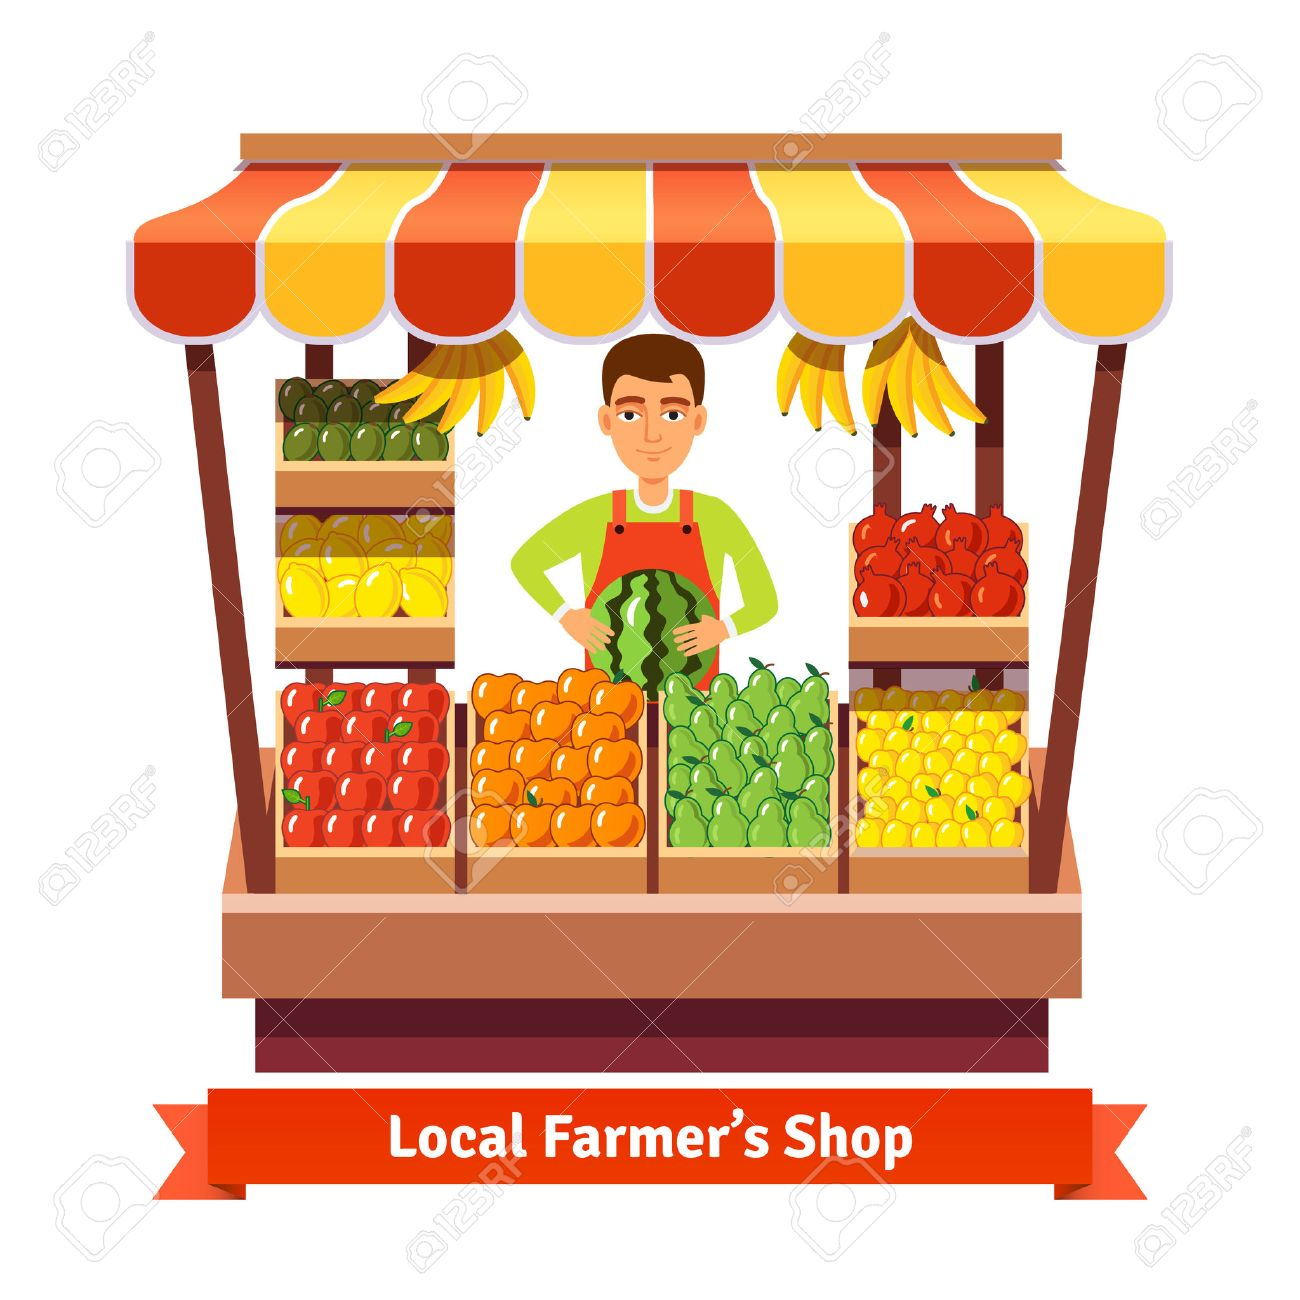 Fruit Shop Clipart.